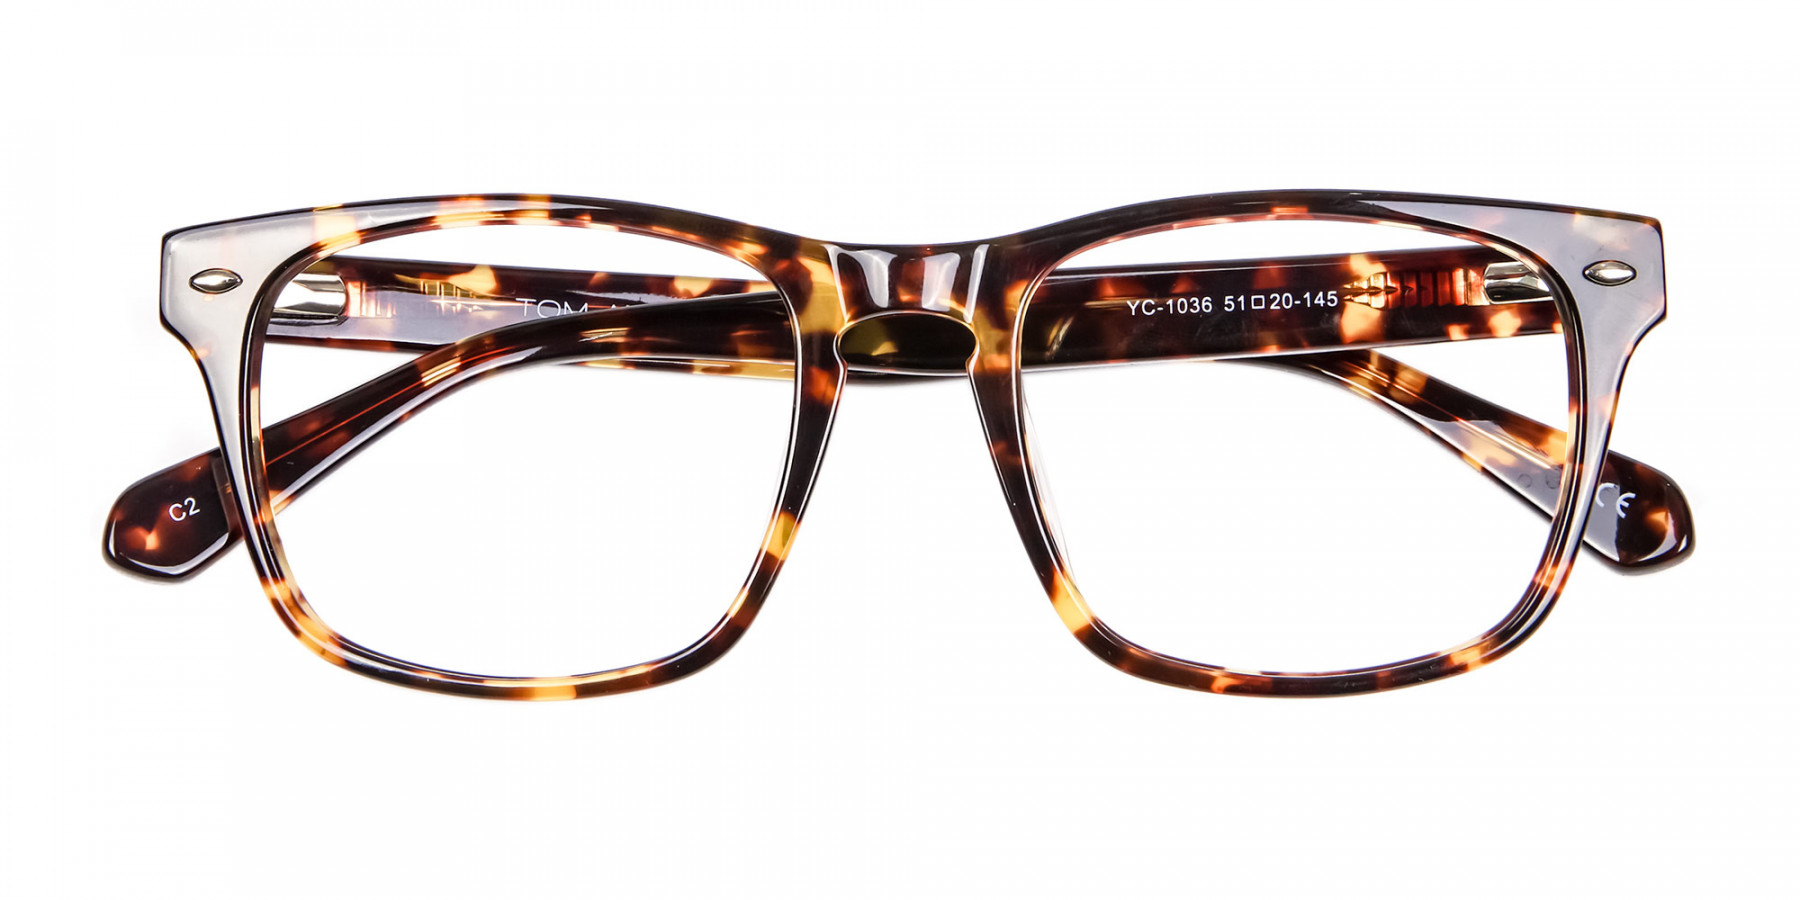 Sparks of Yellow, Havana & Tortoiseshell